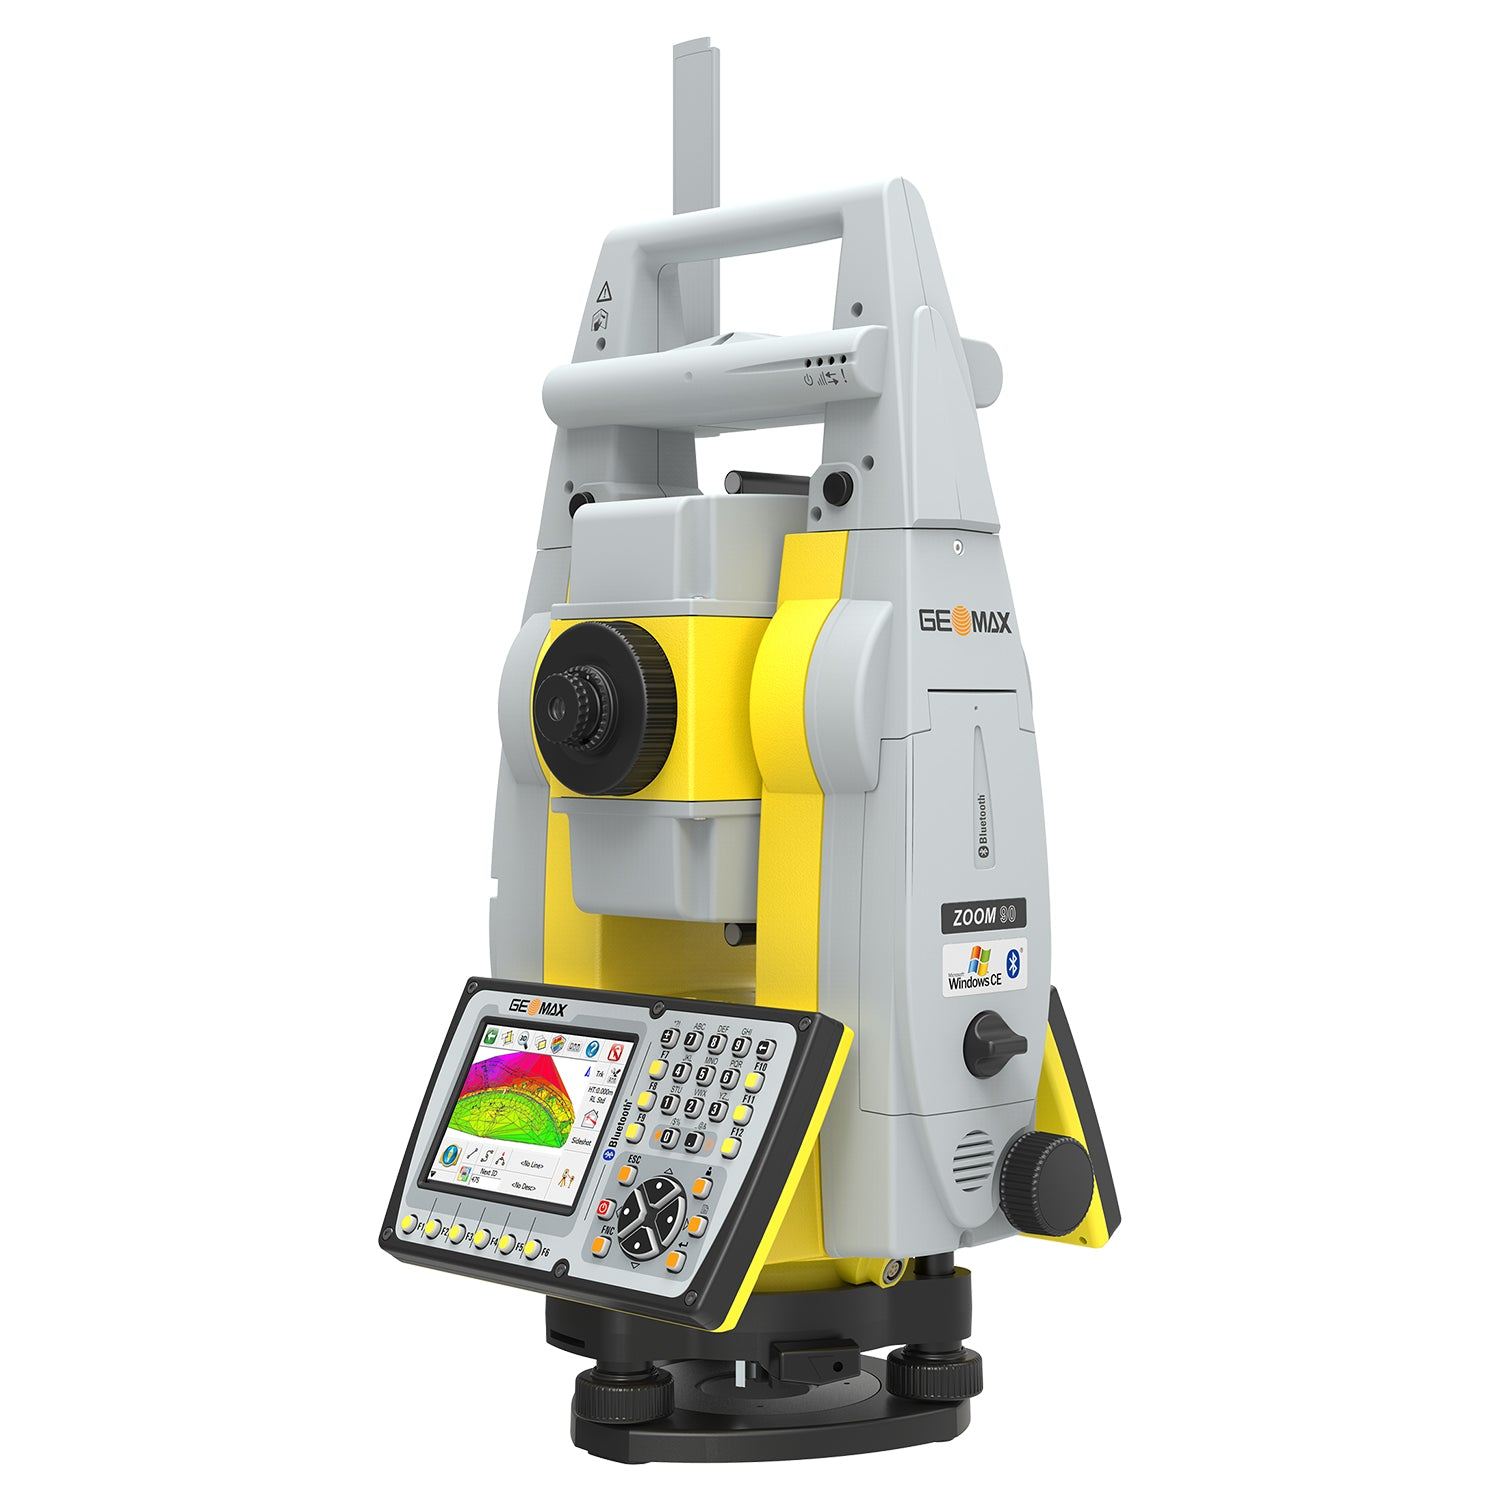 geomax zoom35 pro series manual total station survey equipment egps solutions inc. Black Bedroom Furniture Sets. Home Design Ideas